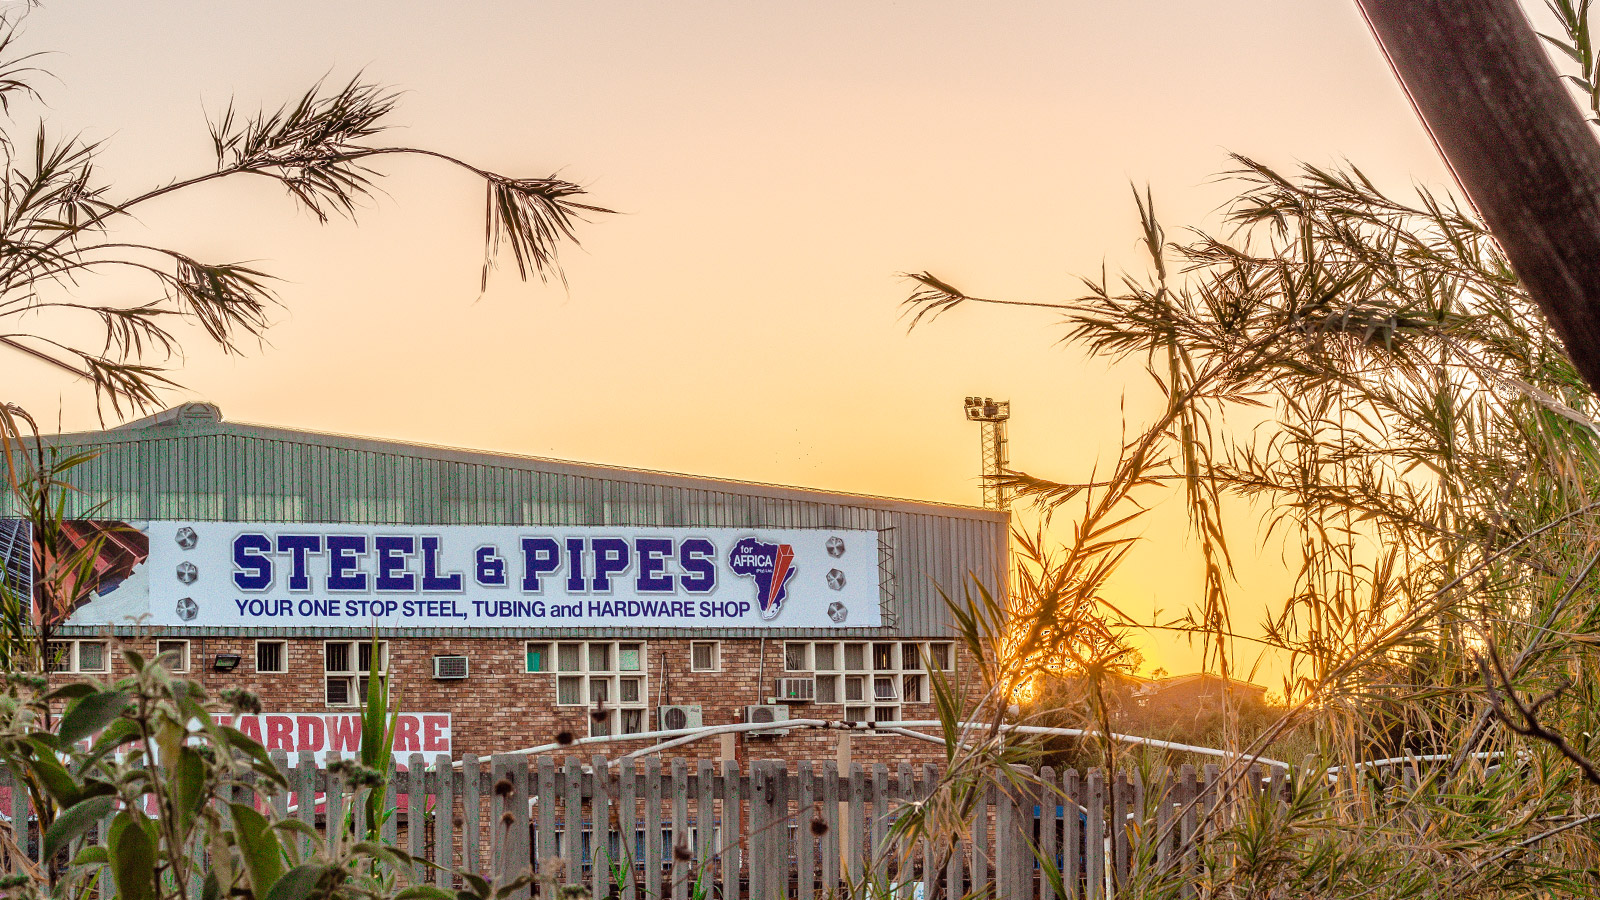 Steel and Pipes for Africa Pretoria West gets NEW Signage